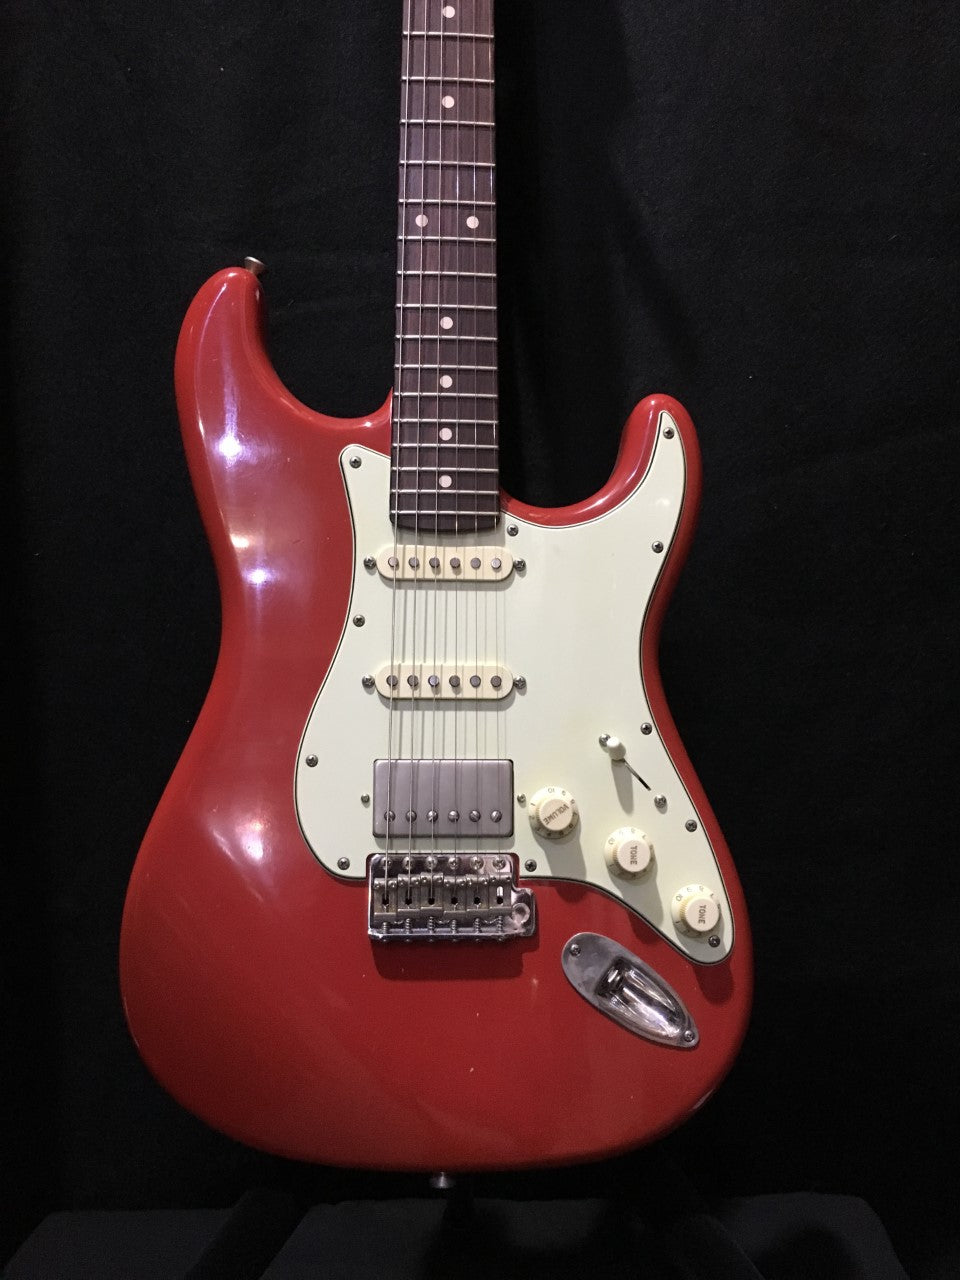 XOTIC CALIFORNIA CLASSIC XSC-2  DAKOTA RED #298 LIGHT AGED - IN HARD CASE